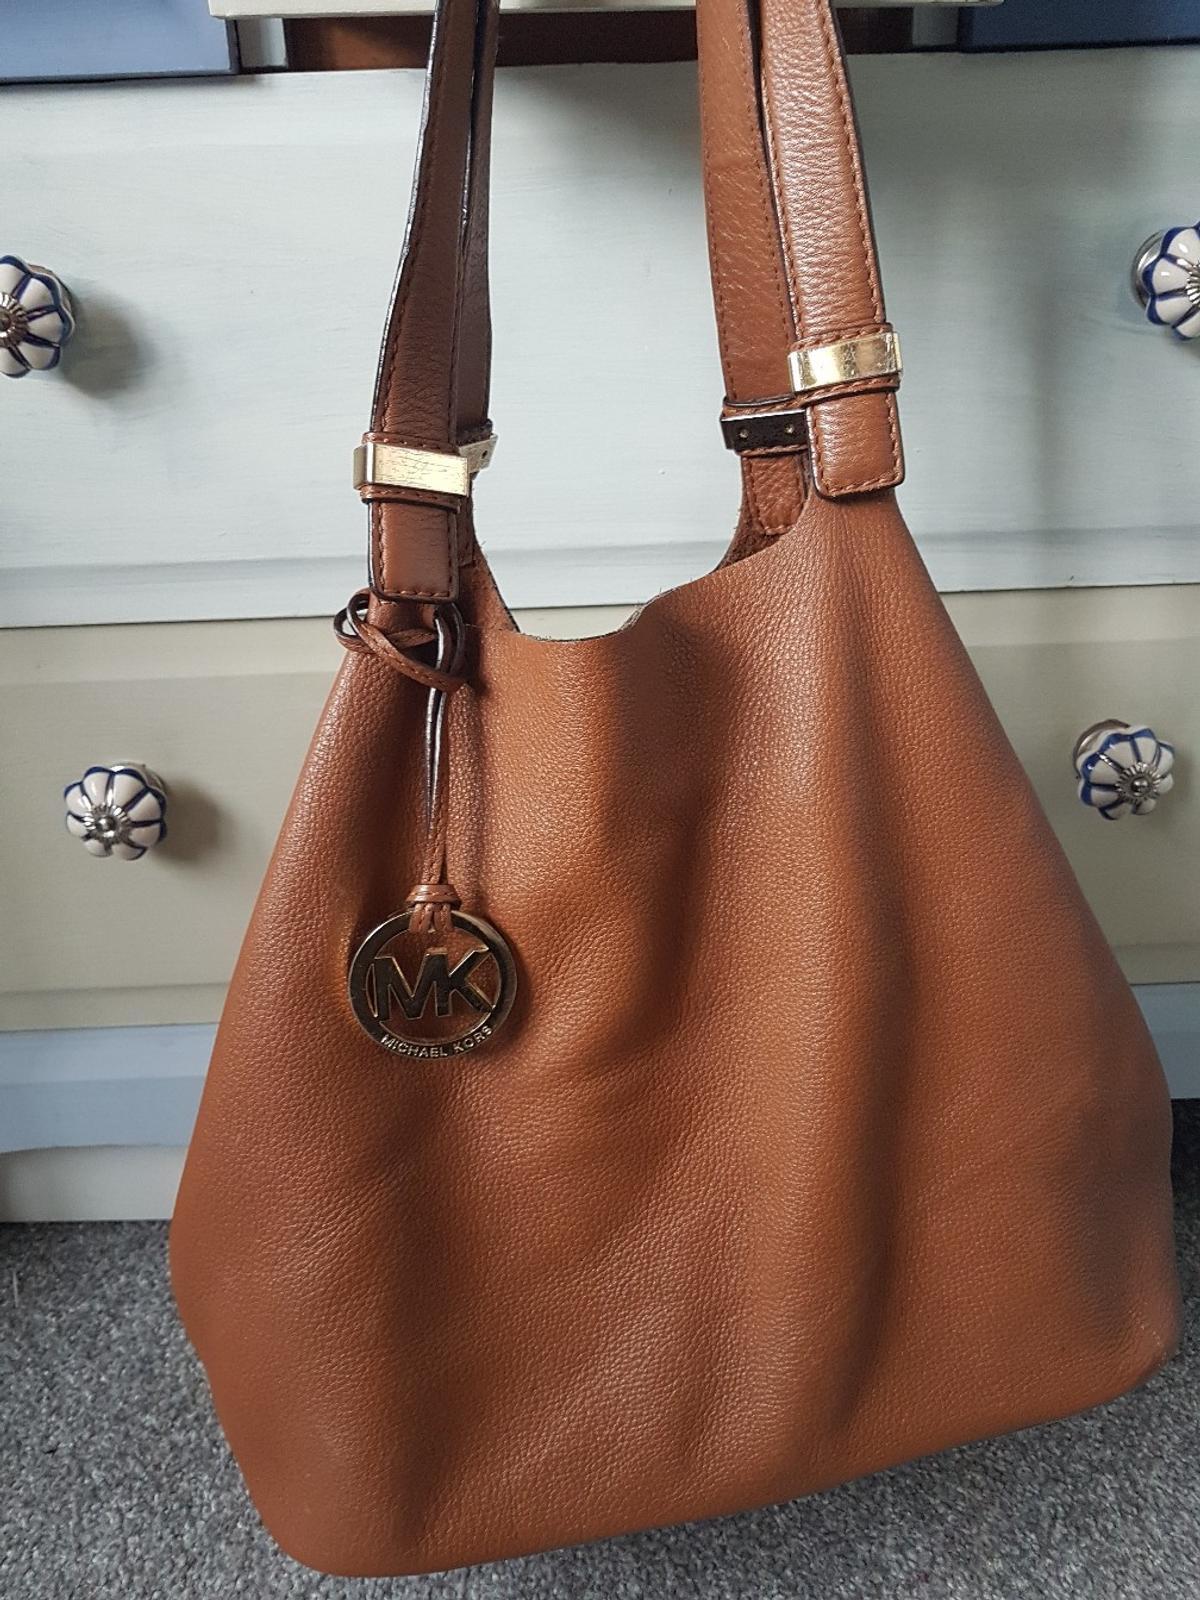 6e66c1ffe8e9 genuine Michael kors tan leather bag in S62 Rotherham for £30.00 for ...